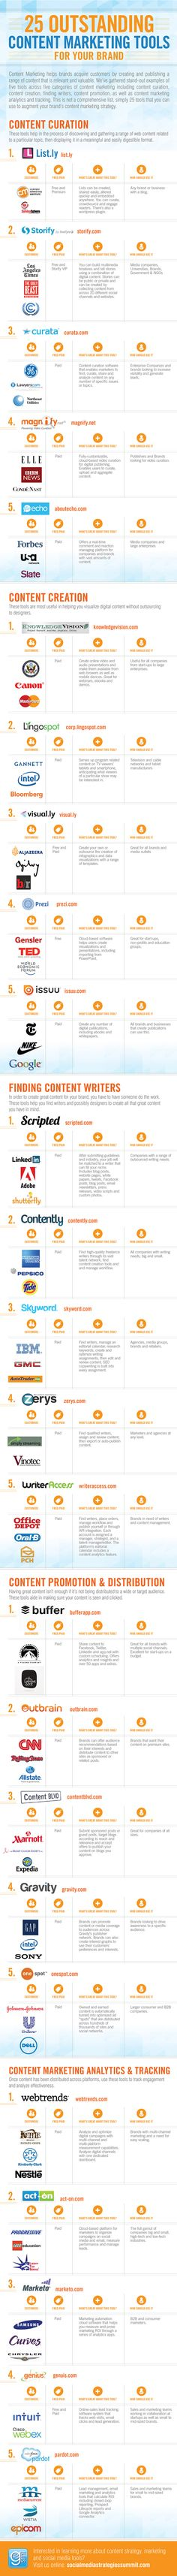 """25 Tools To Boost Your Content Strategy [Infographic] Business 2 Community In the infographic titled Outstanding Content Marketing Tools For Your Brand"""" by the Social Media Strategies Summit, we can view numerous tools that enhance content. Inbound Marketing, Marketing Digital, Mundo Marketing, Marketing Services, Content Marketing Tools, Marketing Online, Marketing Plan, Business Marketing, Internet Marketing"""